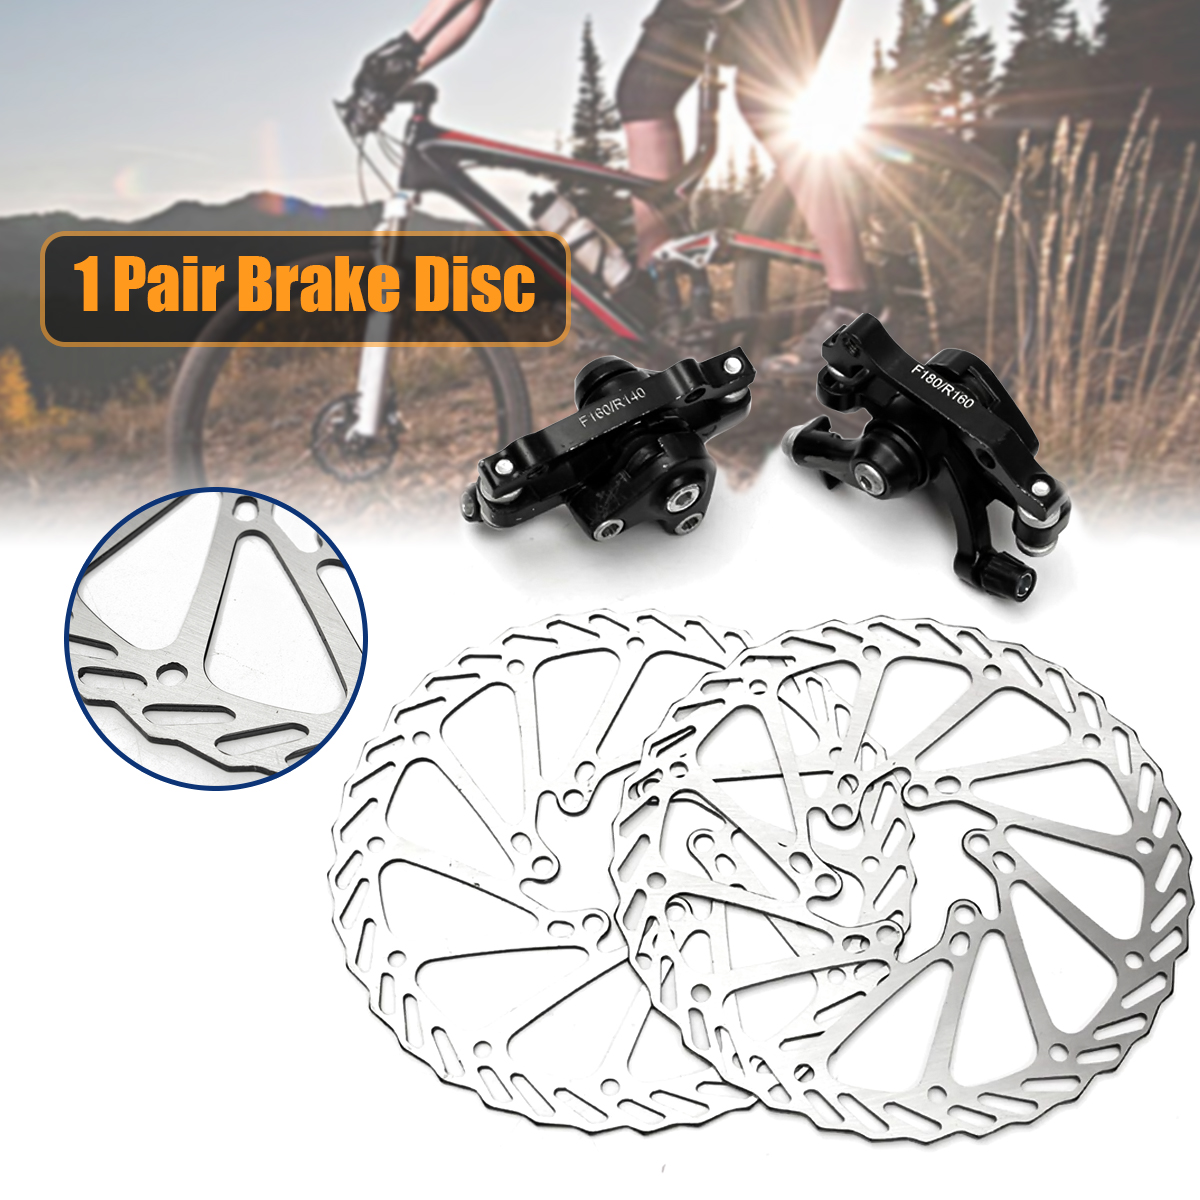 Rear MTB Mountain Bike Parts Aluminum Caliper Cycling Bicycle Disc Brake Front